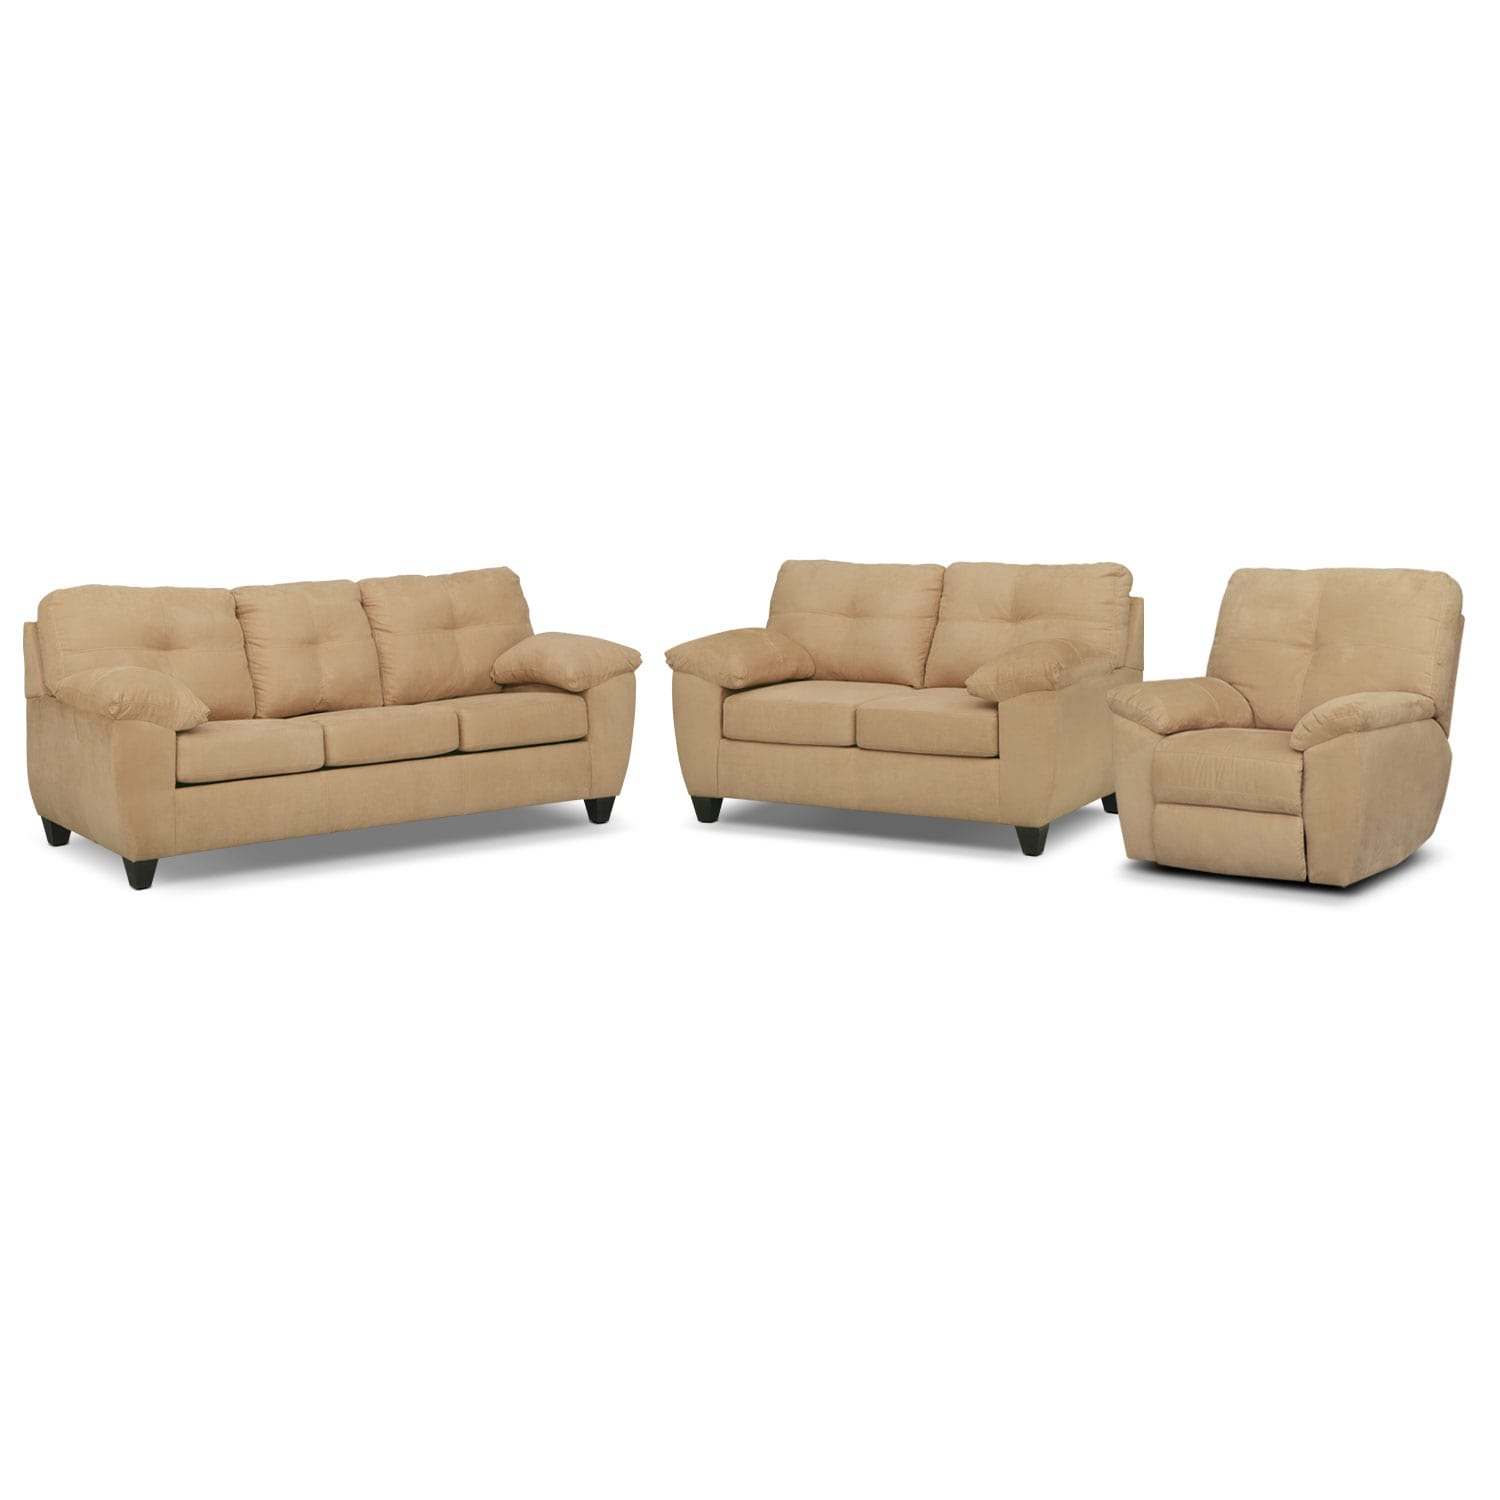 Living Room Furniture - Rialto Sofa, Loveseat and Glider Recliner Set - Camel